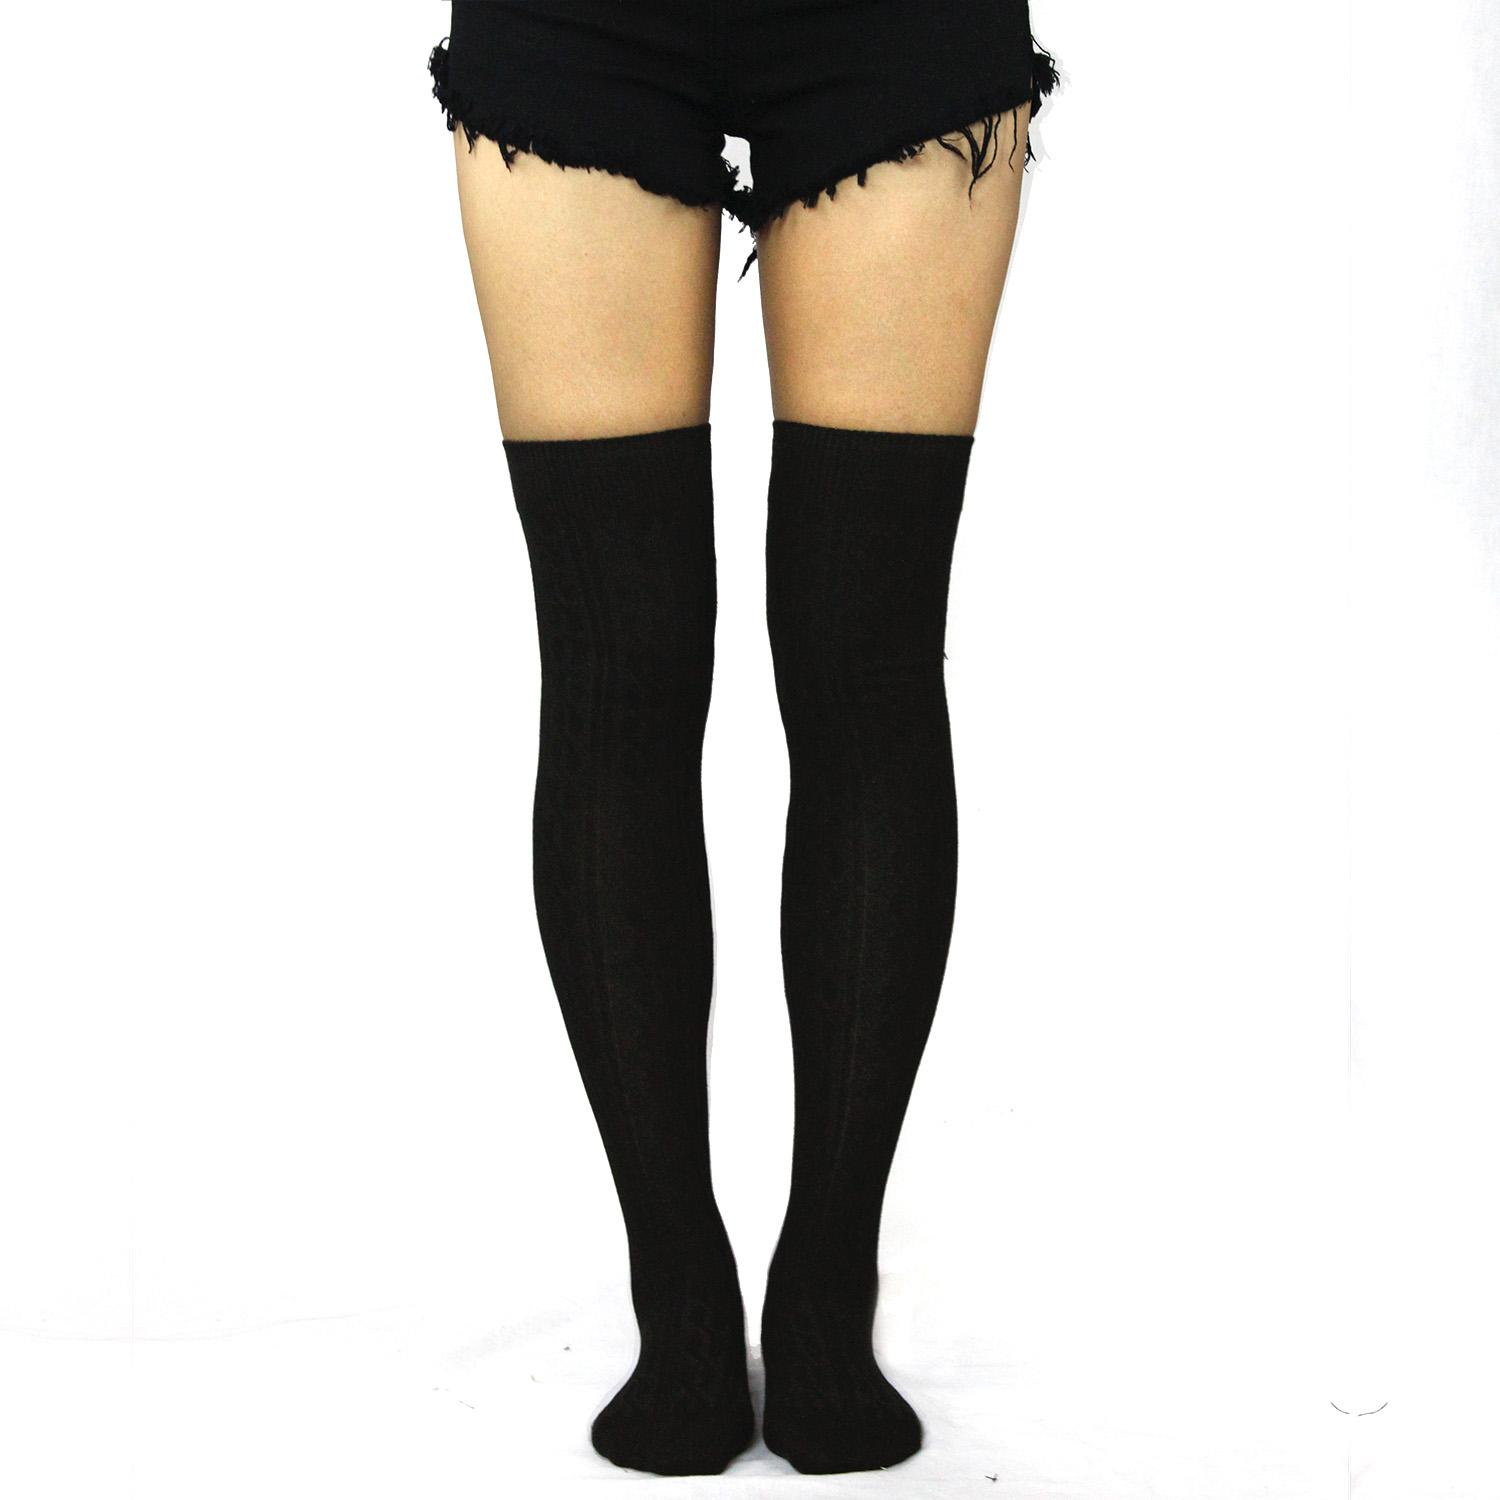 We offer premium hosiery, thigh highs, and over the knee thigh high socks in a variety of colors and styles! Our netted thigh highs come in different variations that .